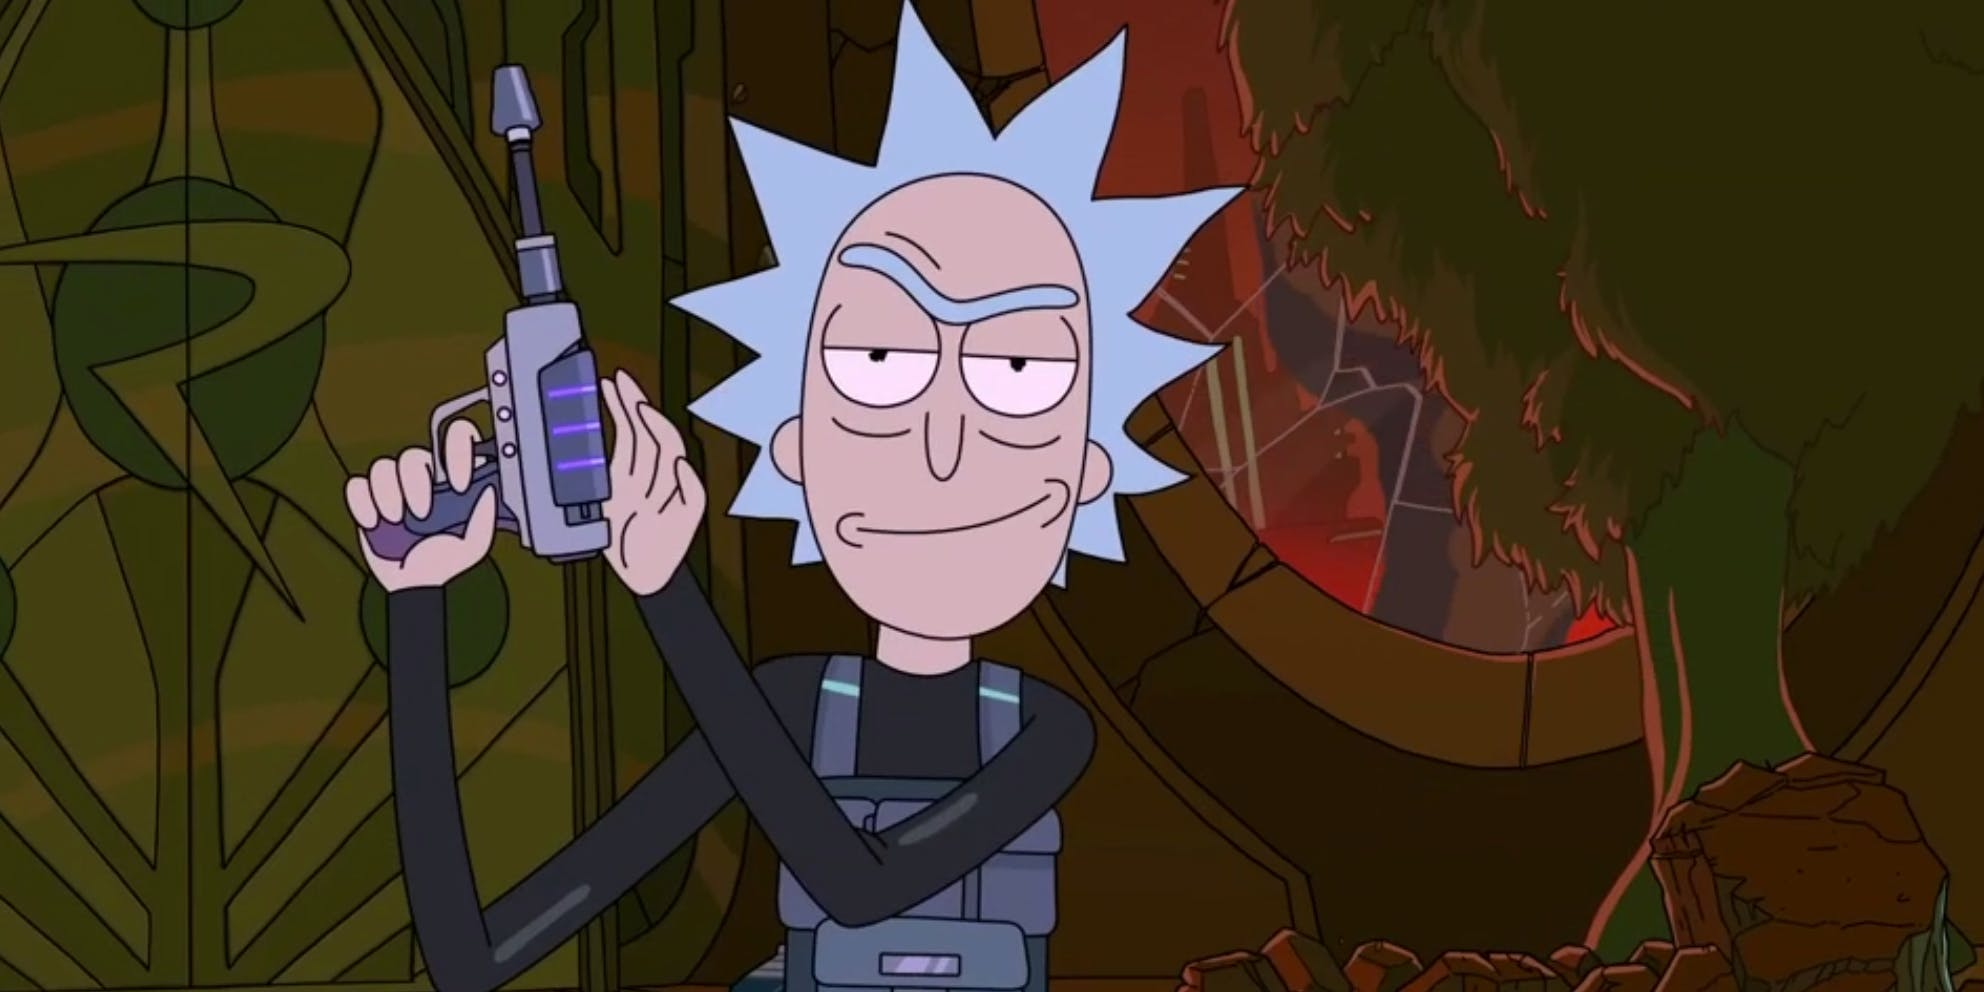 Rick and Morty Season 3 is streaming online on Adult Swim right now.